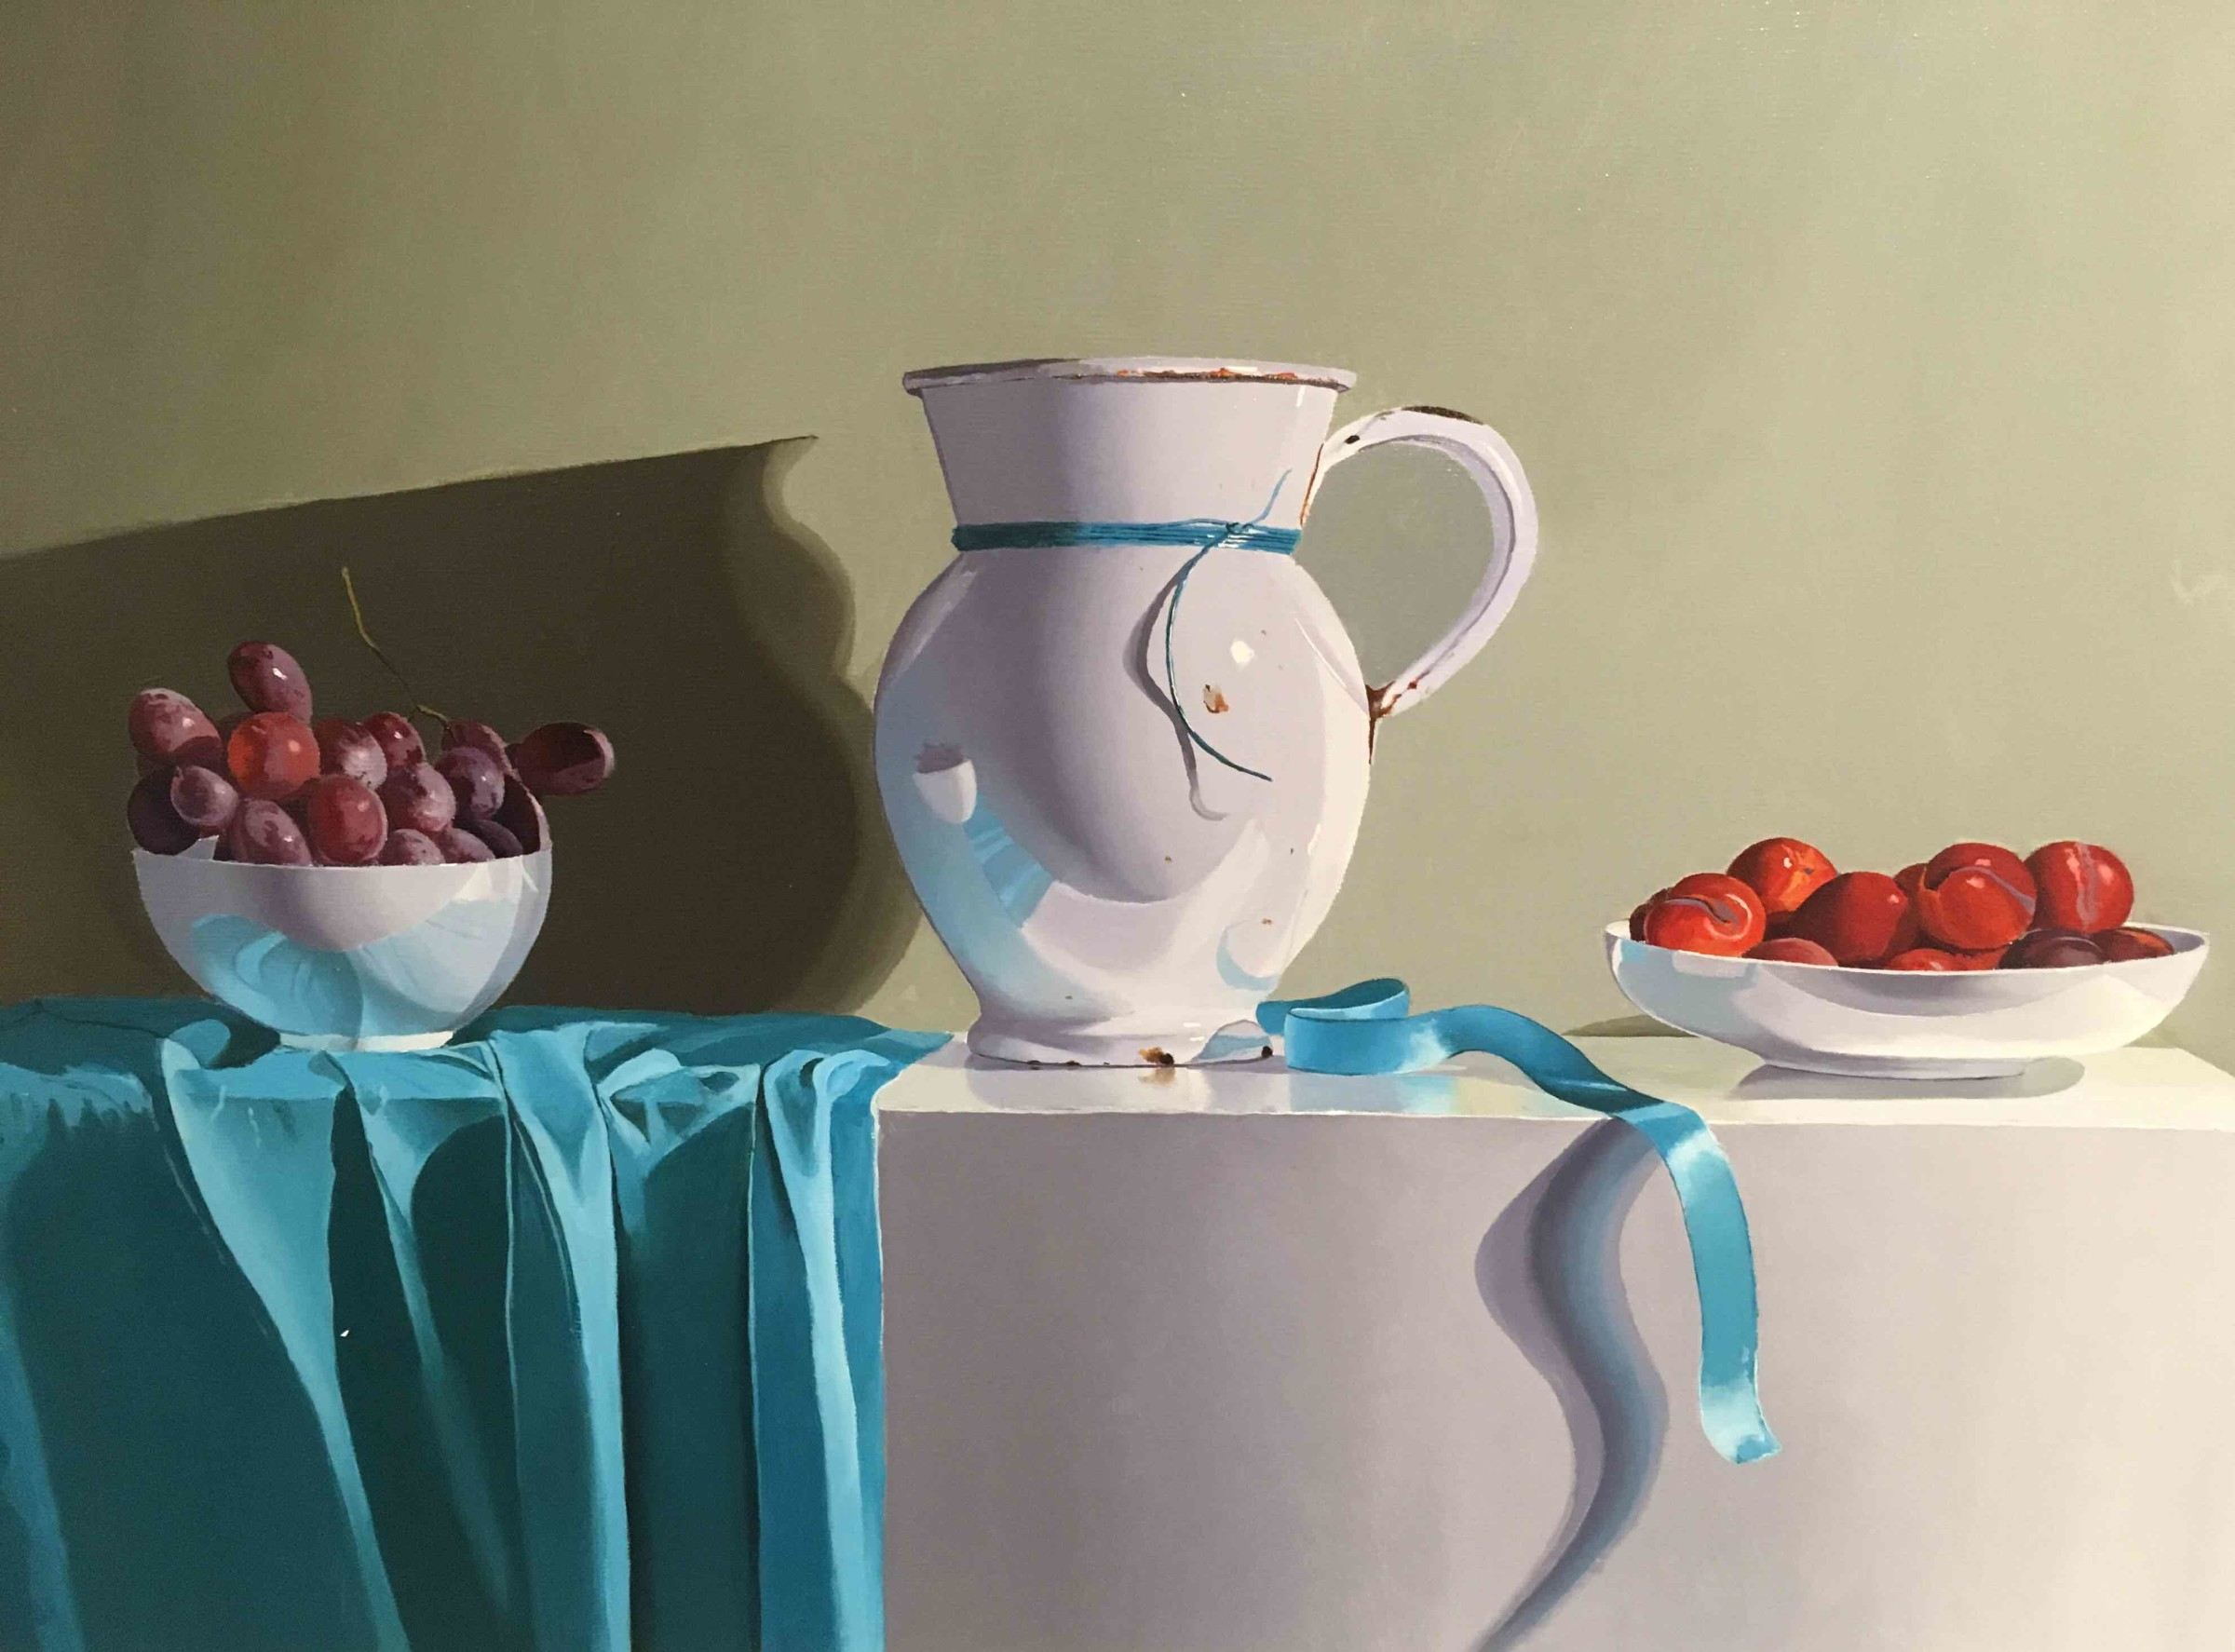 <span class=&#34;link fancybox-details-link&#34;><a href=&#34;/artists/67-robert-walker/works/1998-robert-walker-white-bowls-and-turquoise-ribbon/&#34;>View Detail Page</a></span><div class=&#34;artist&#34;><strong>Robert Walker</strong></div> <div class=&#34;title&#34;><em>White Bowls and Turquoise Ribbon </em></div> <div class=&#34;medium&#34;>Oil on Linen </div> <div class=&#34;dimensions&#34;>53 x 78 cm</div><div class=&#34;price&#34;>£1,900.00</div><div class=&#34;copyright_line&#34;>Copyright The Artist</div>